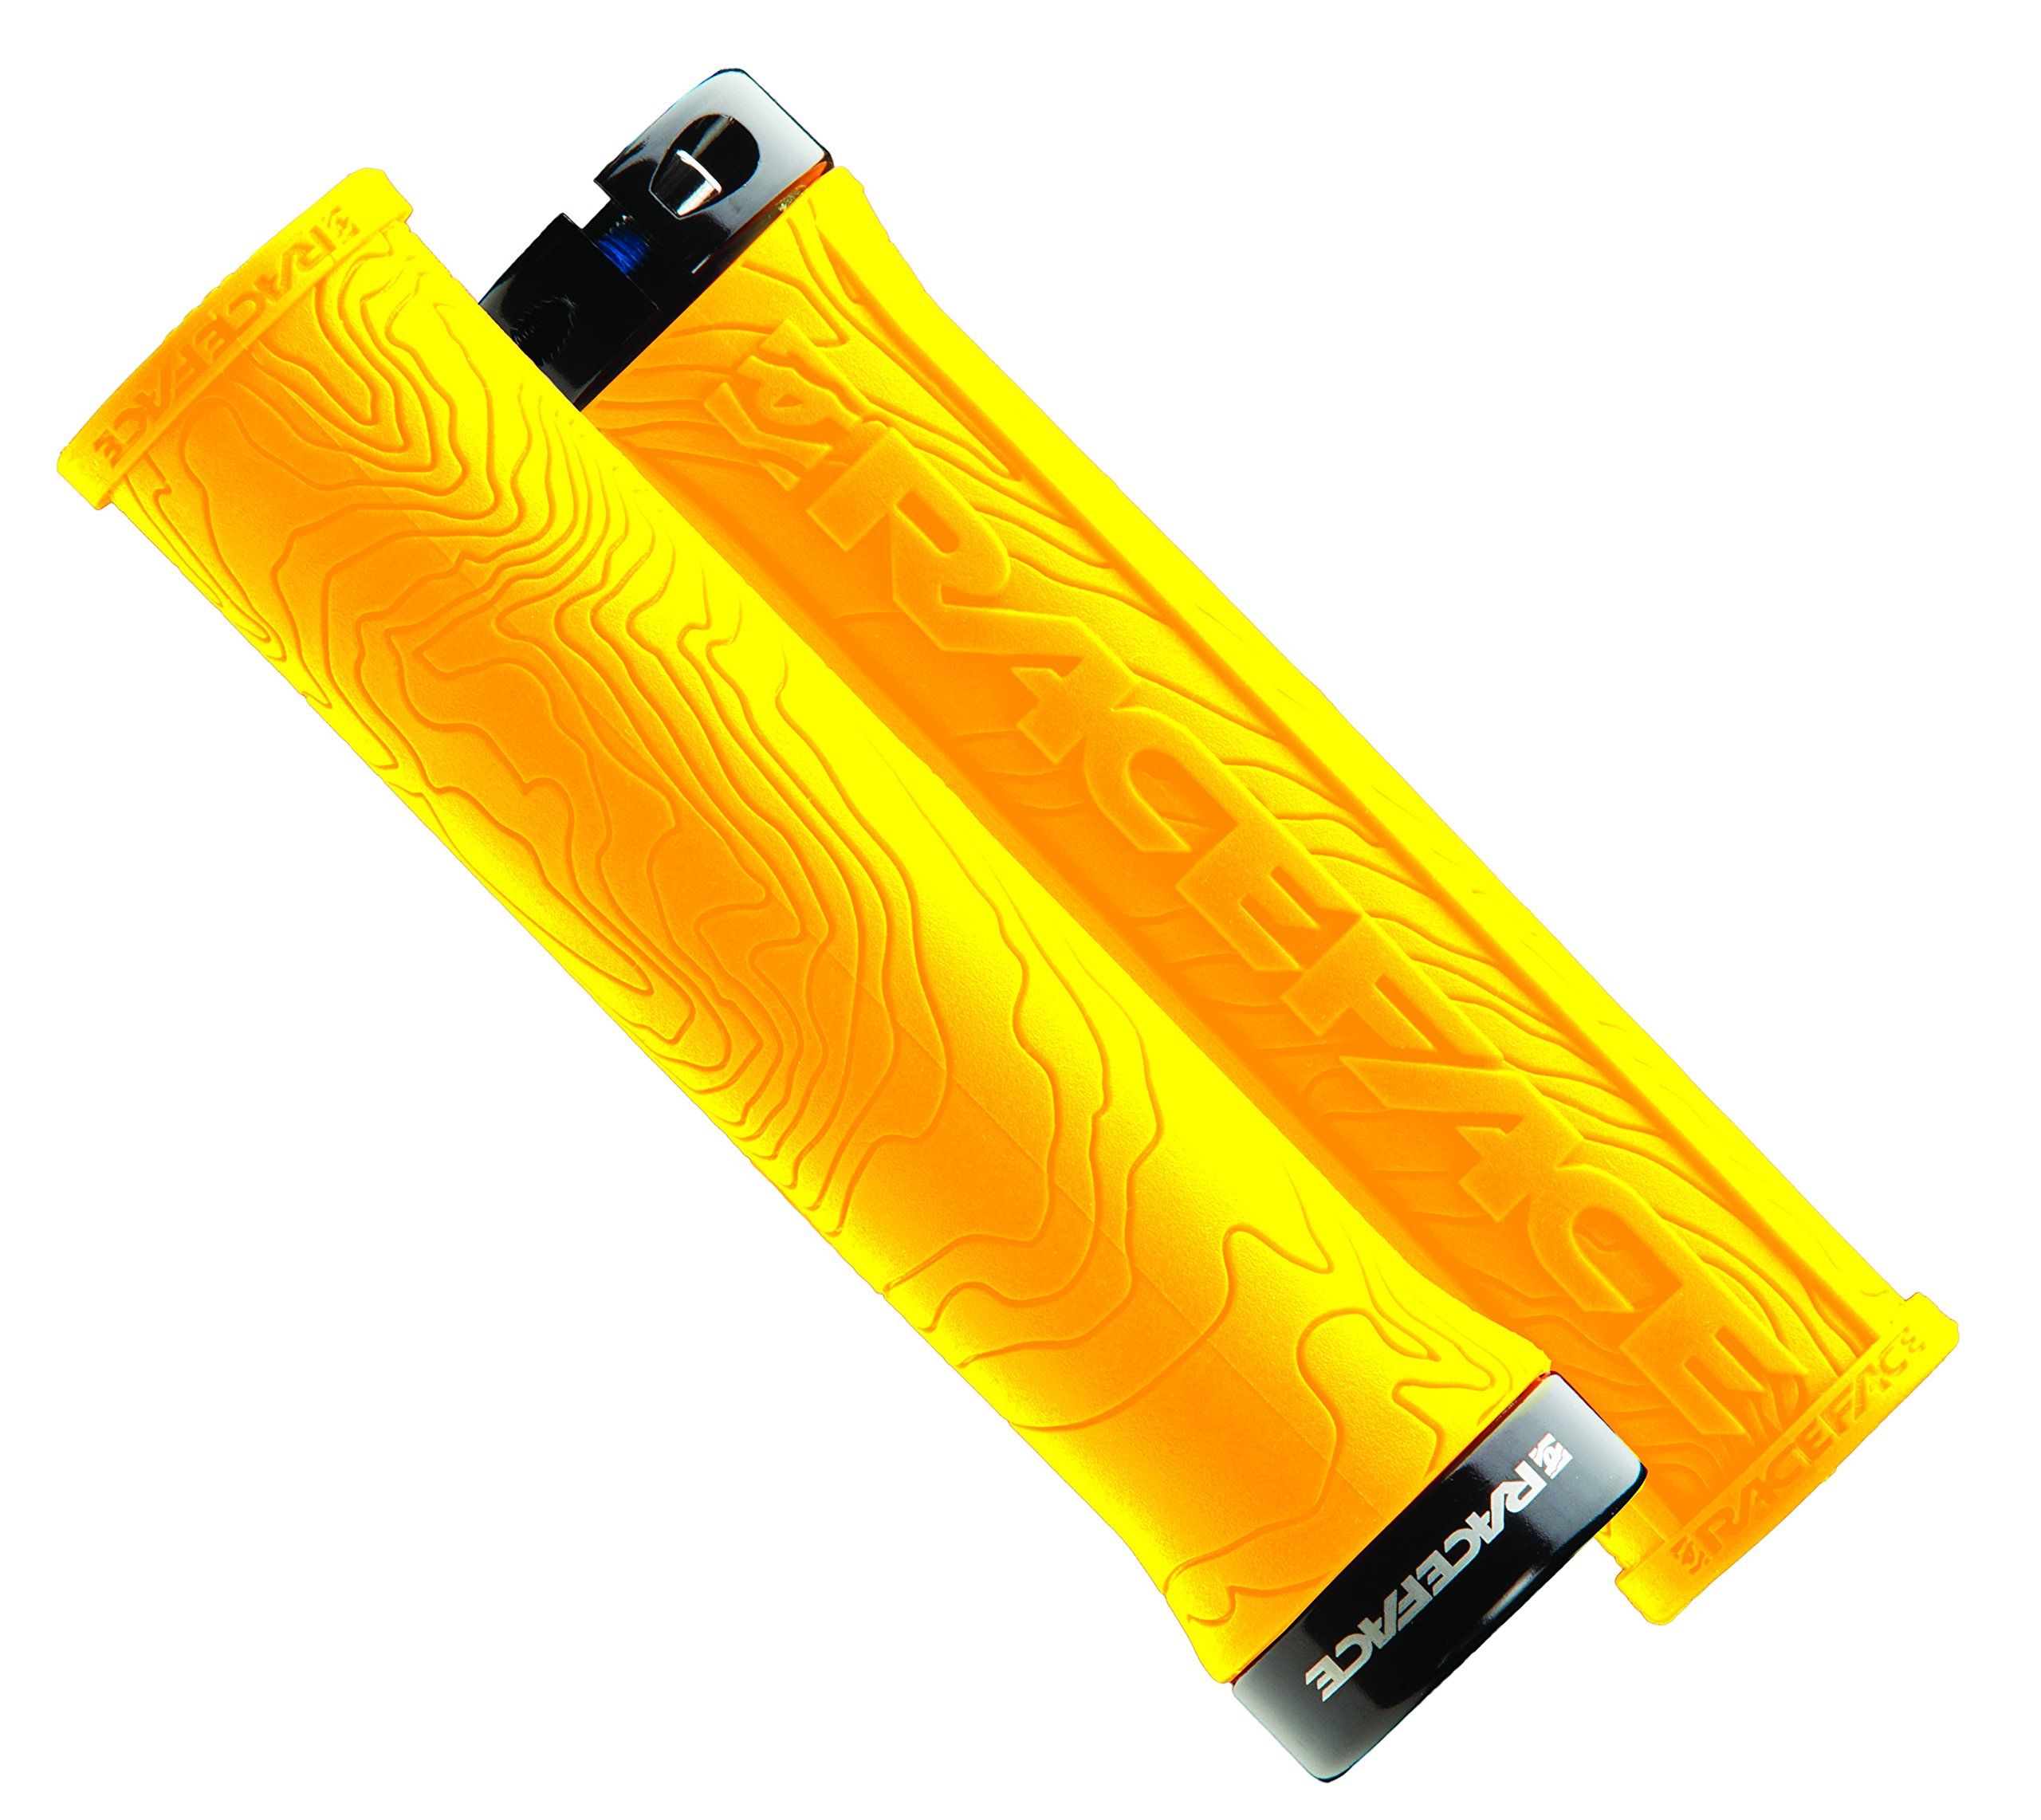 RaceFace Half Nelson Locking Bike Grips, Yellow by RaceFace